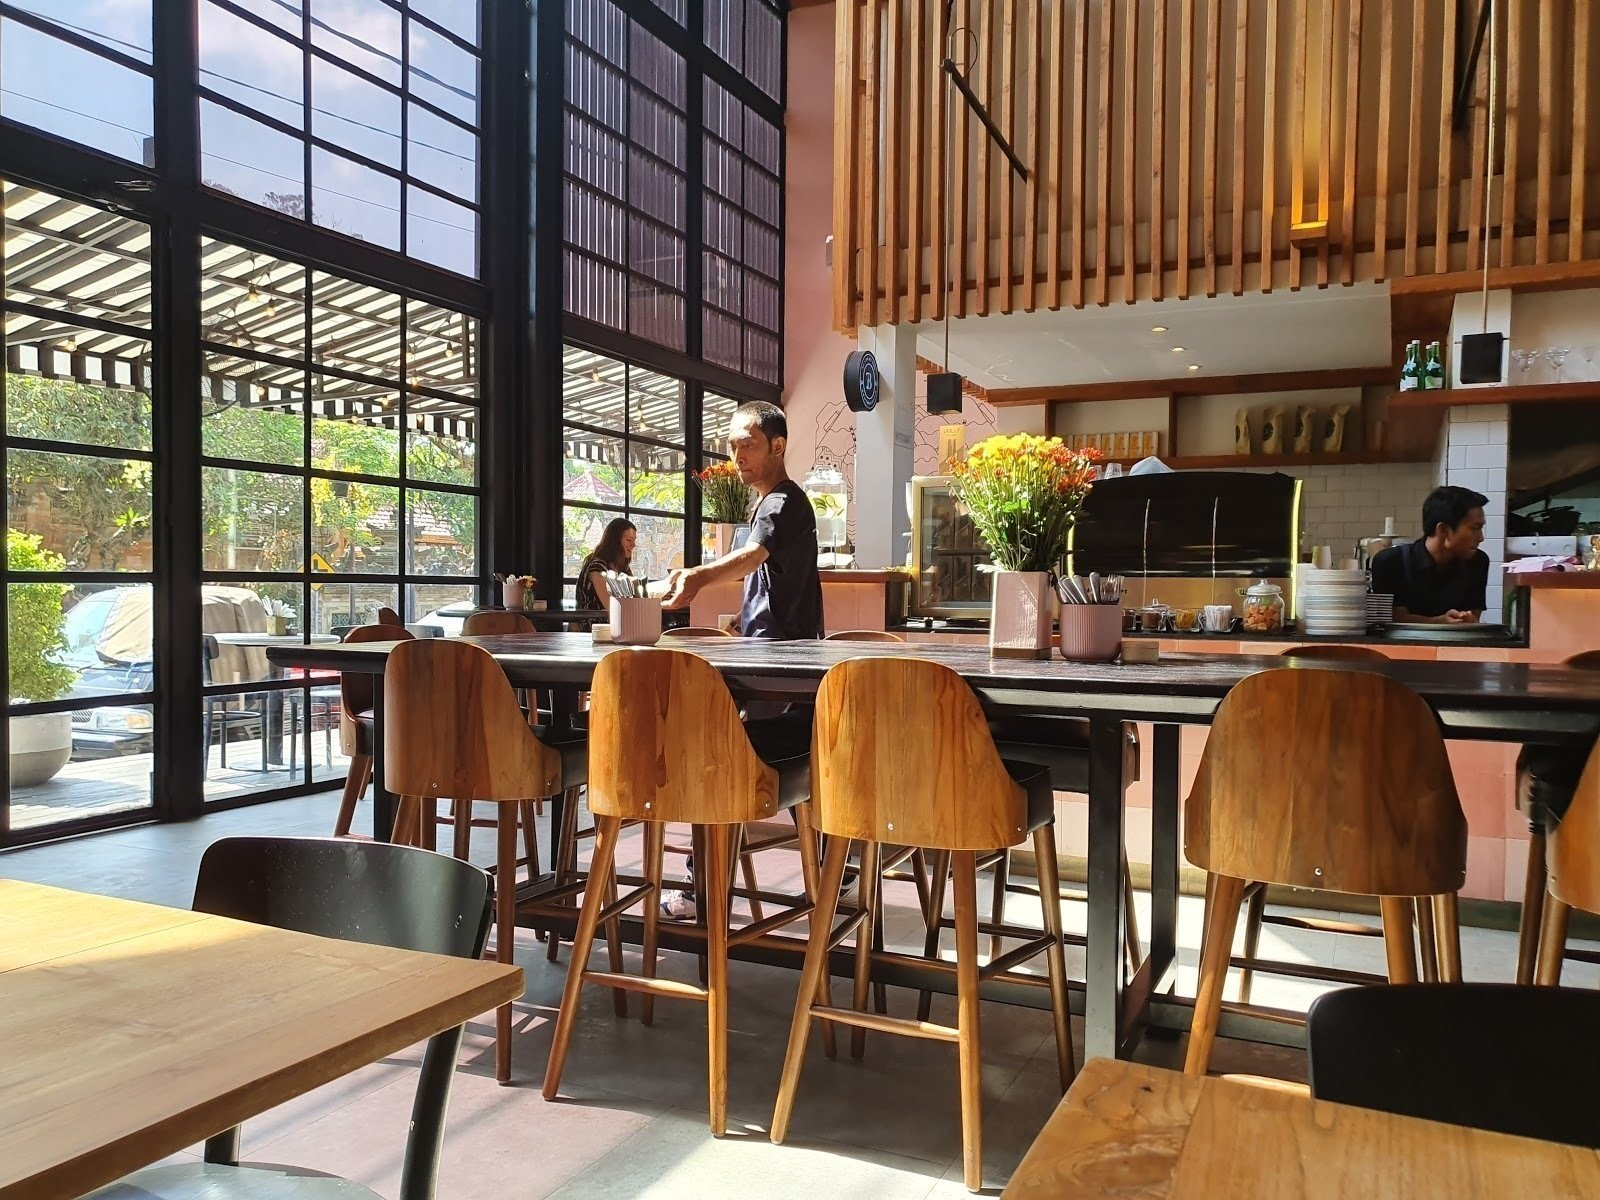 Milk & Madu Ubud: A Work-Friendly Place in Ubud